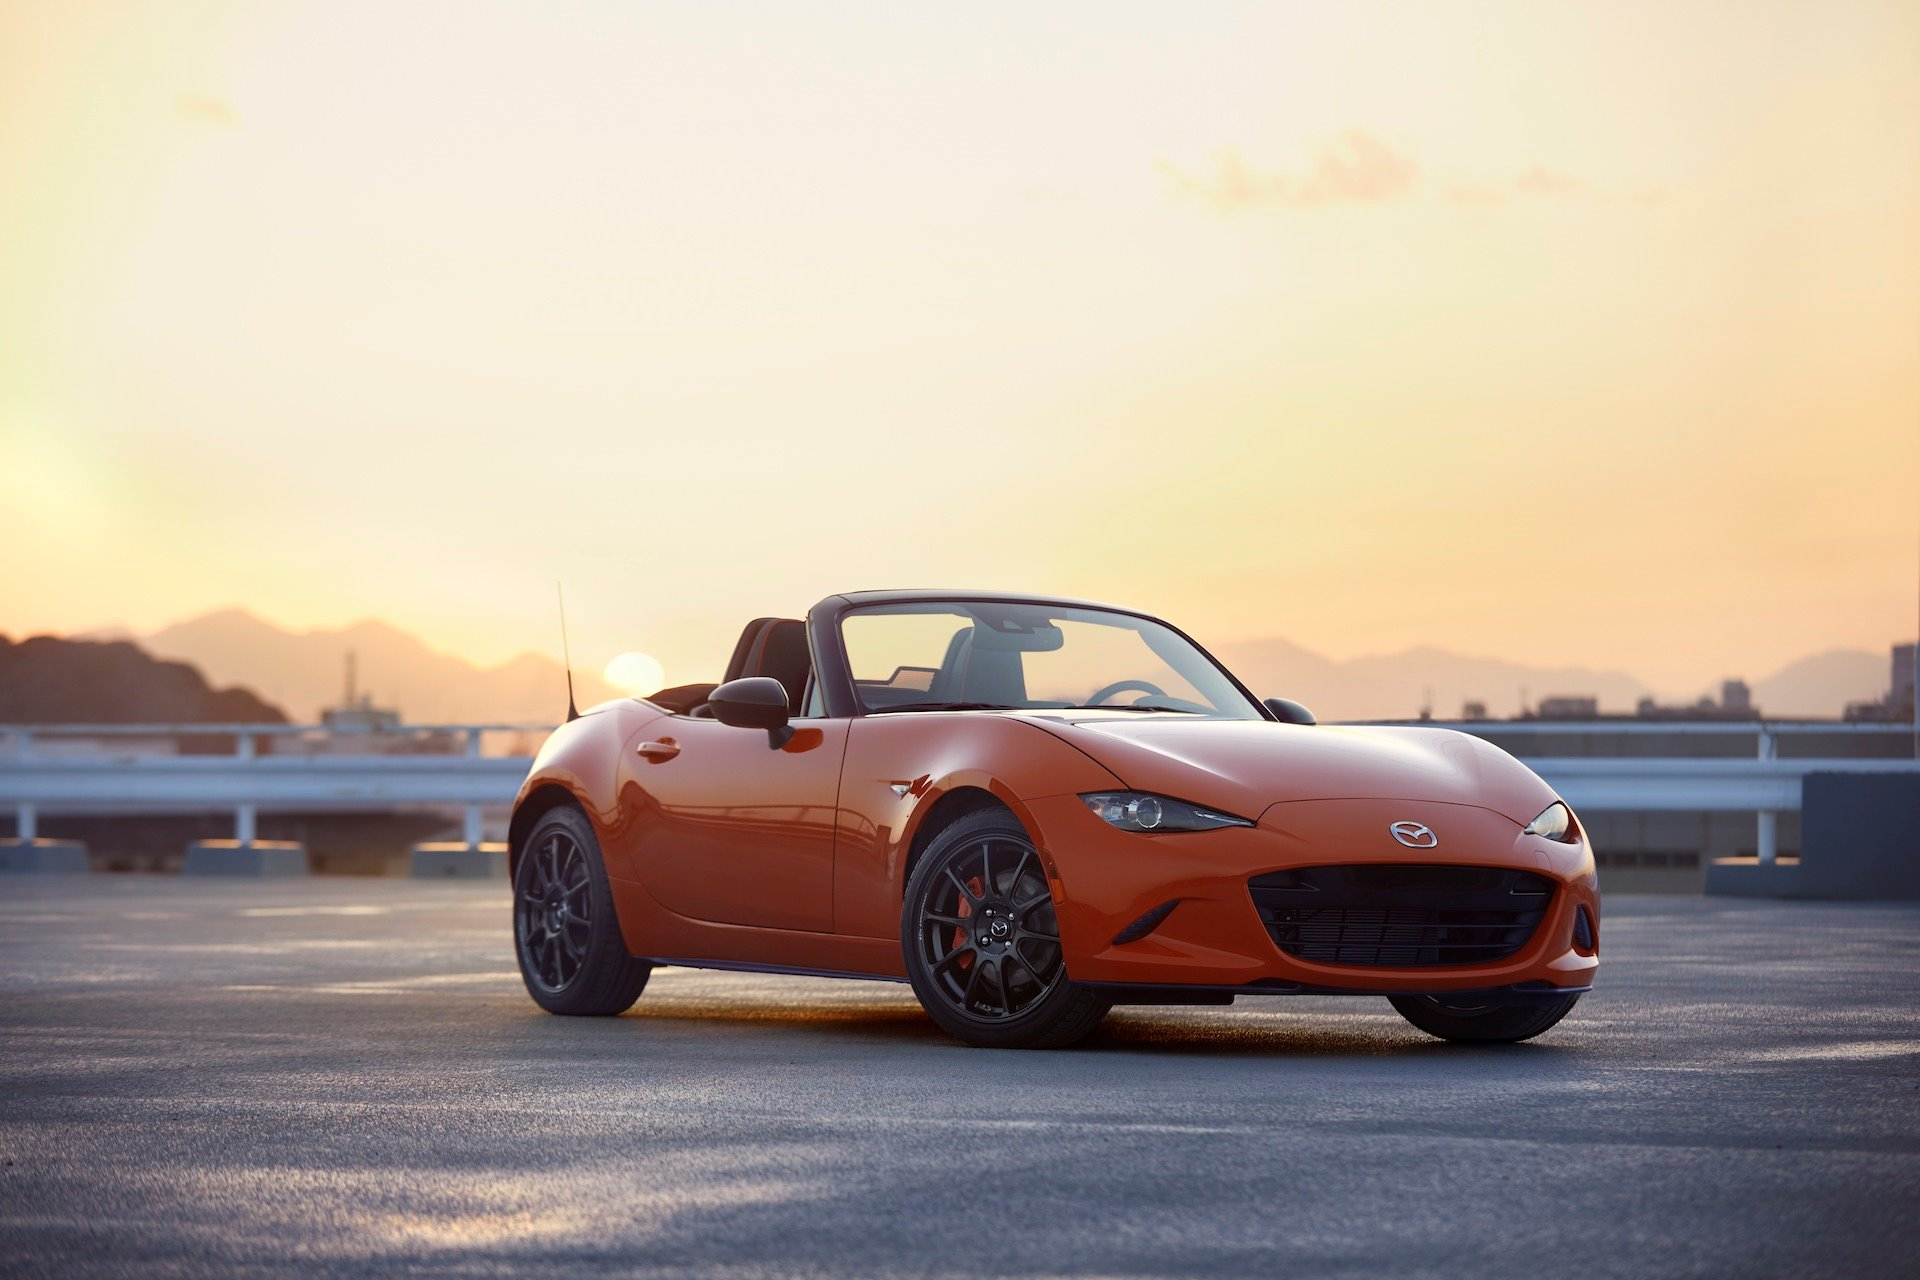 New 2018 Mazda-MX-5 Miata Grand Touring MX-5 Miata Grand Touring for sale $31,270 at M and V Leasing in Brooklyn NY 11223 1